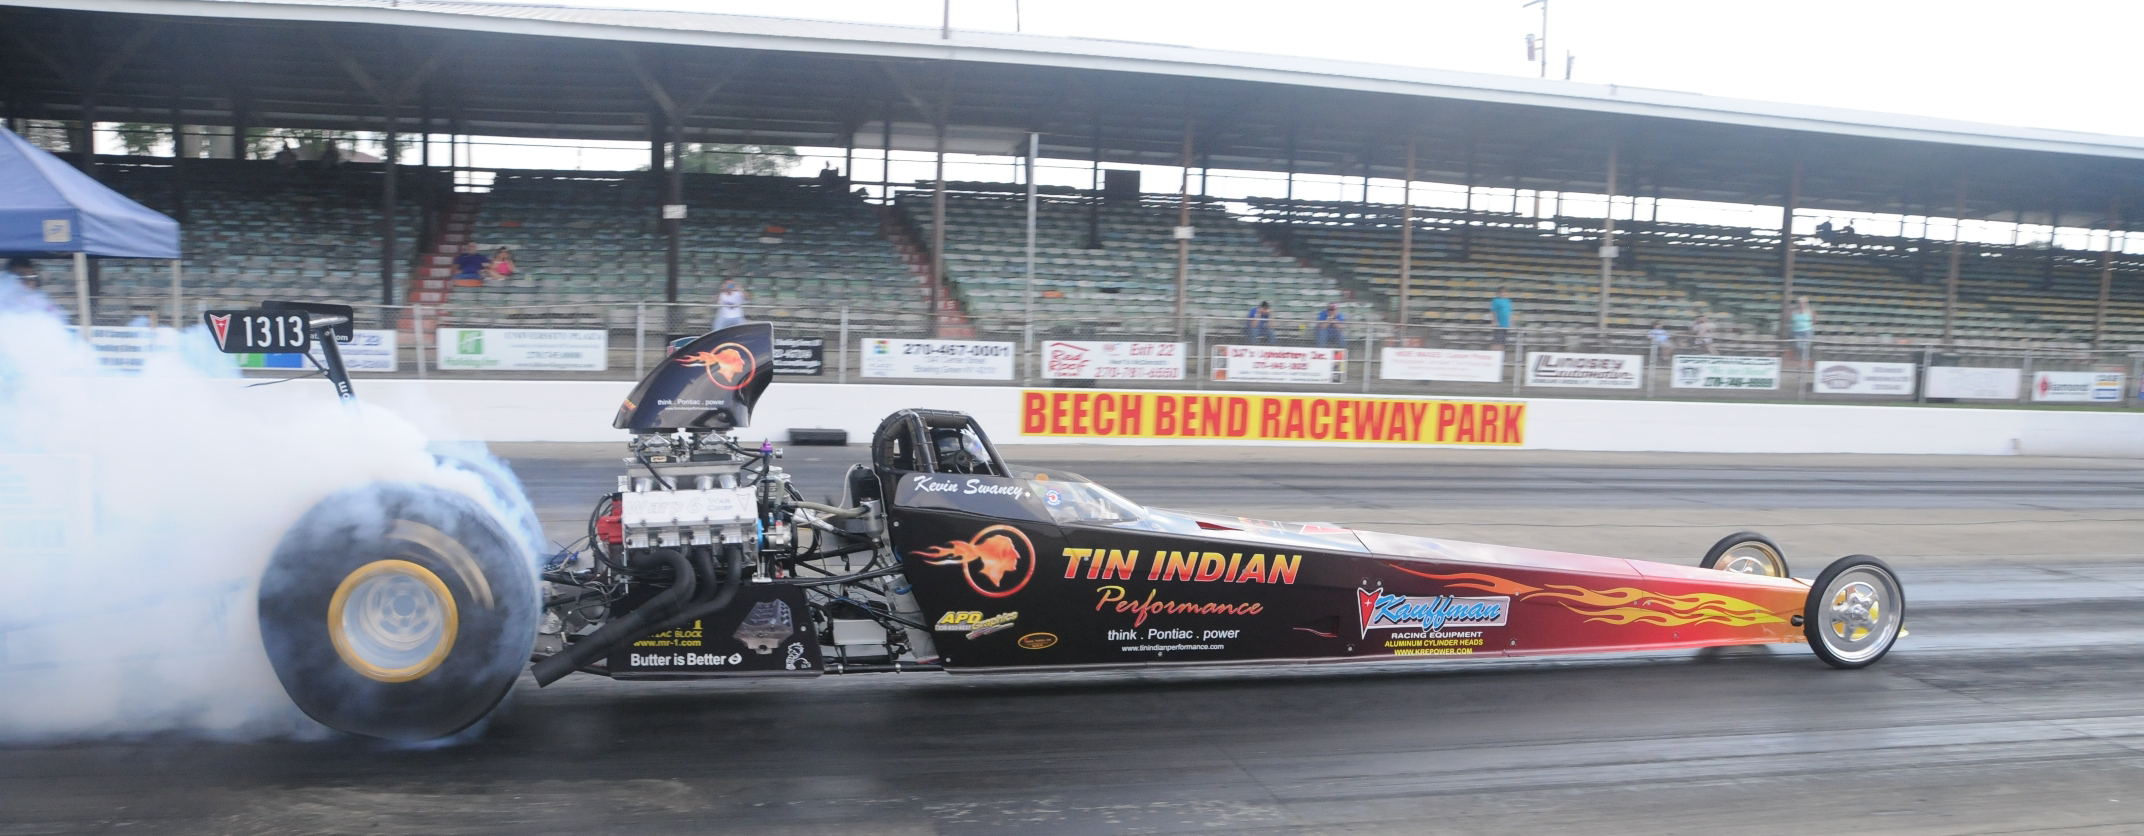 Tin Indian Performance Dragster 2015 Beech Bend